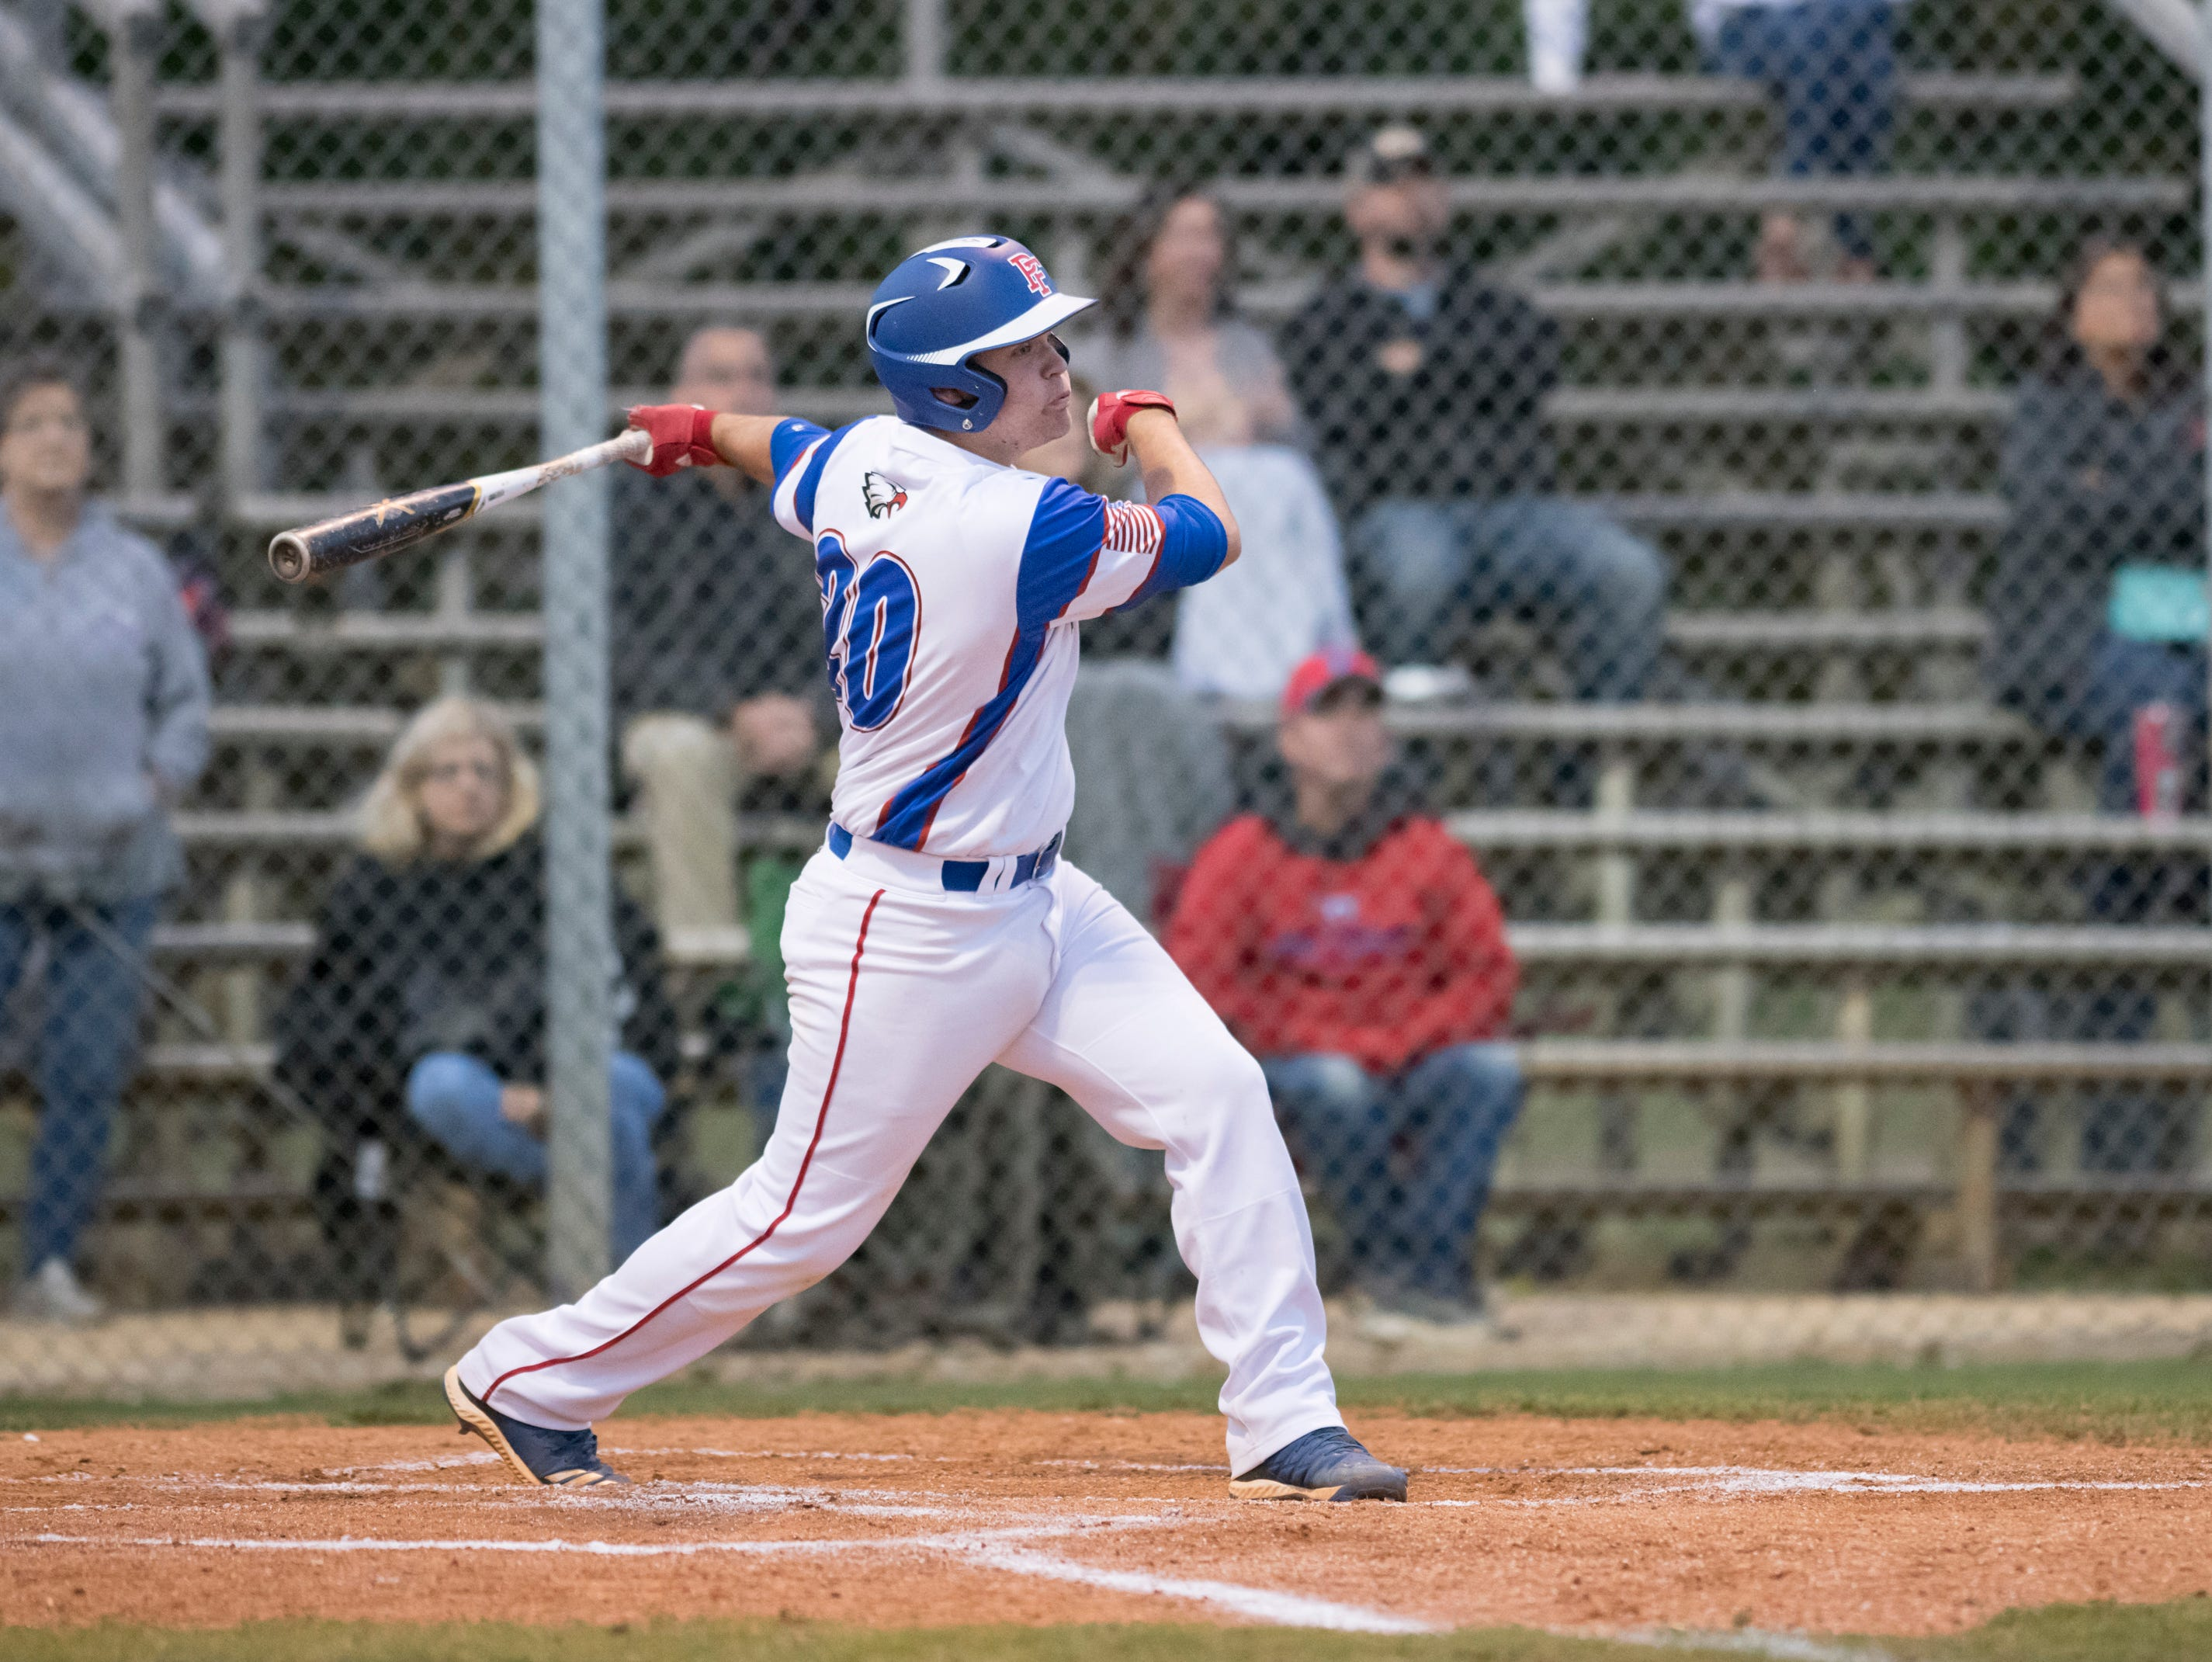 Timmy Williams (20) watches his shot after making contact during the Christian Educational Consortium vs Pine Forest baseball game at Pine Forest High School in Pensacola on Wednesday, April 3, 2019.